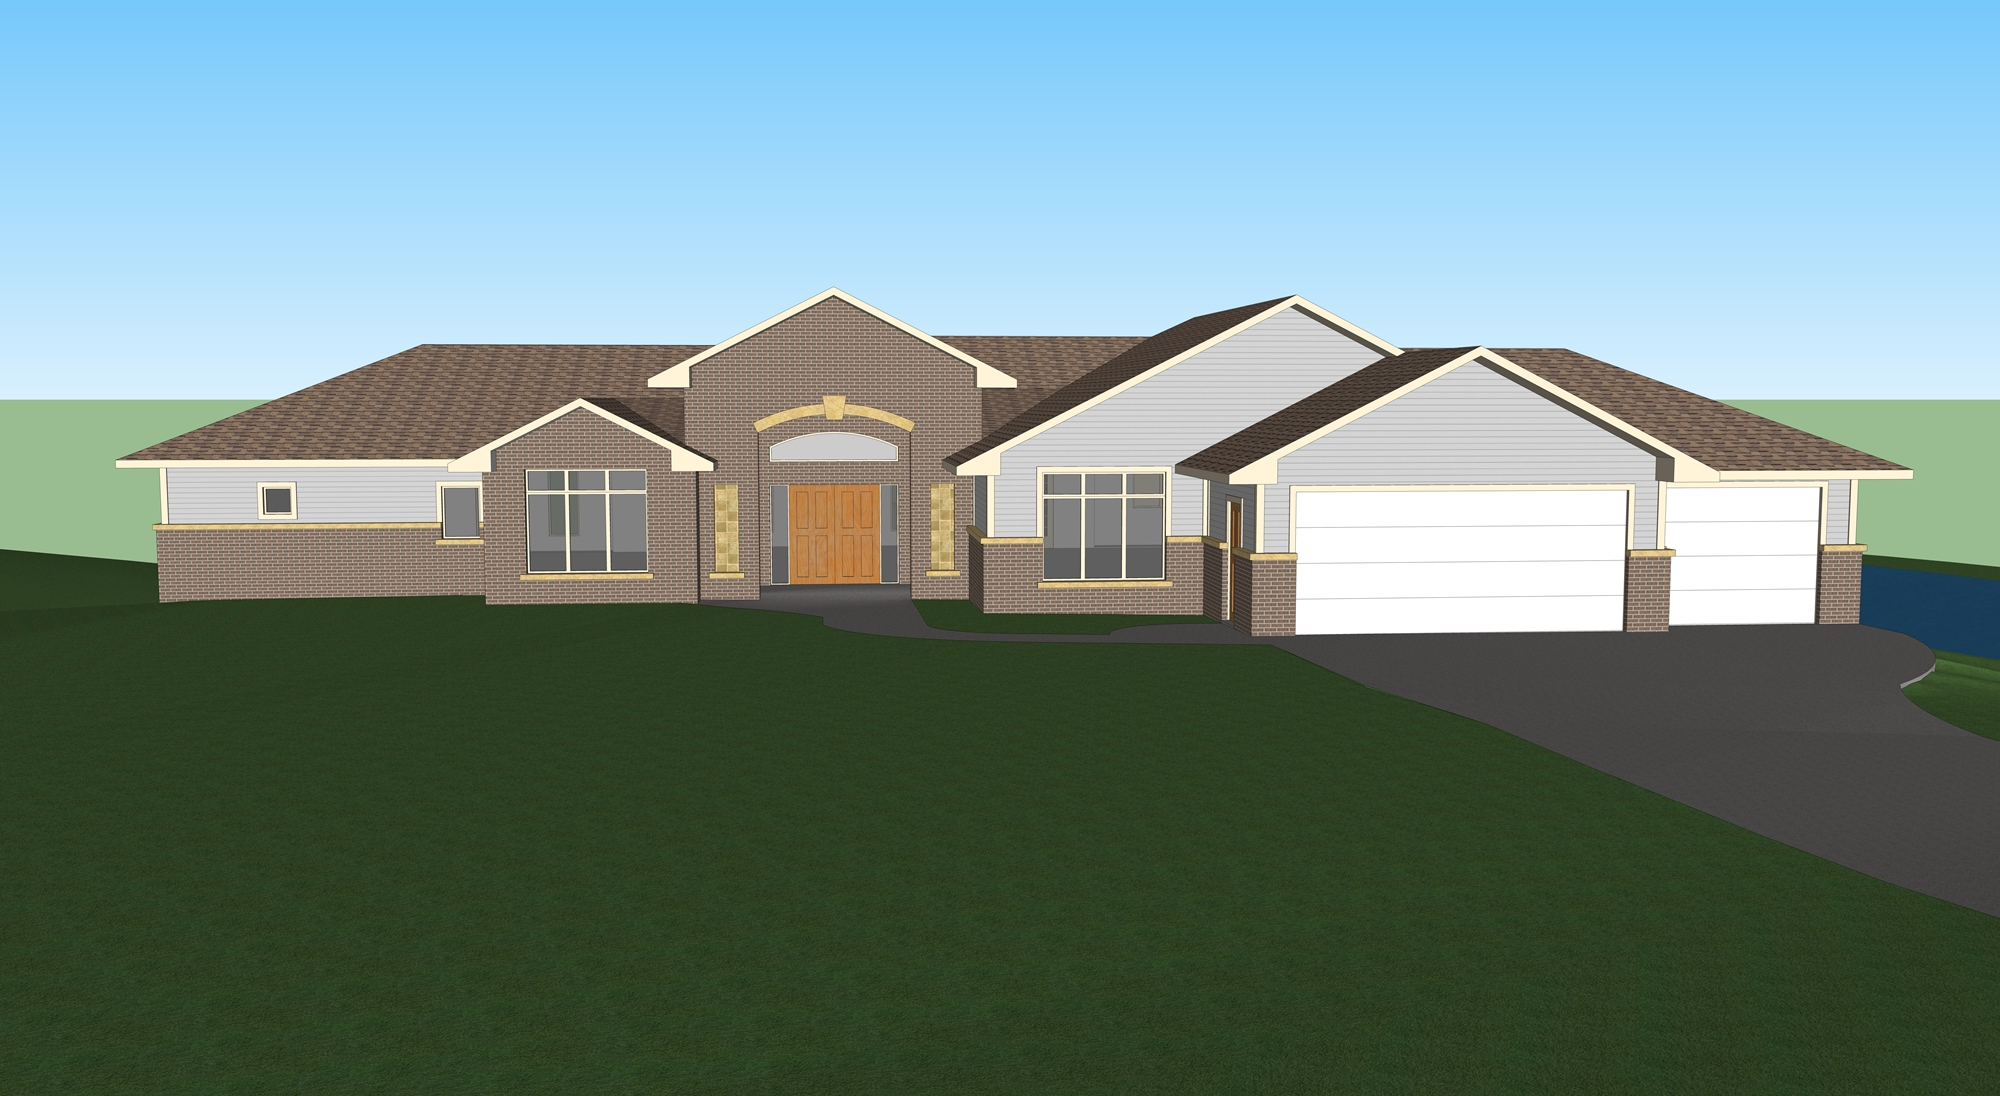 Baker Front of Home 3D Rendering